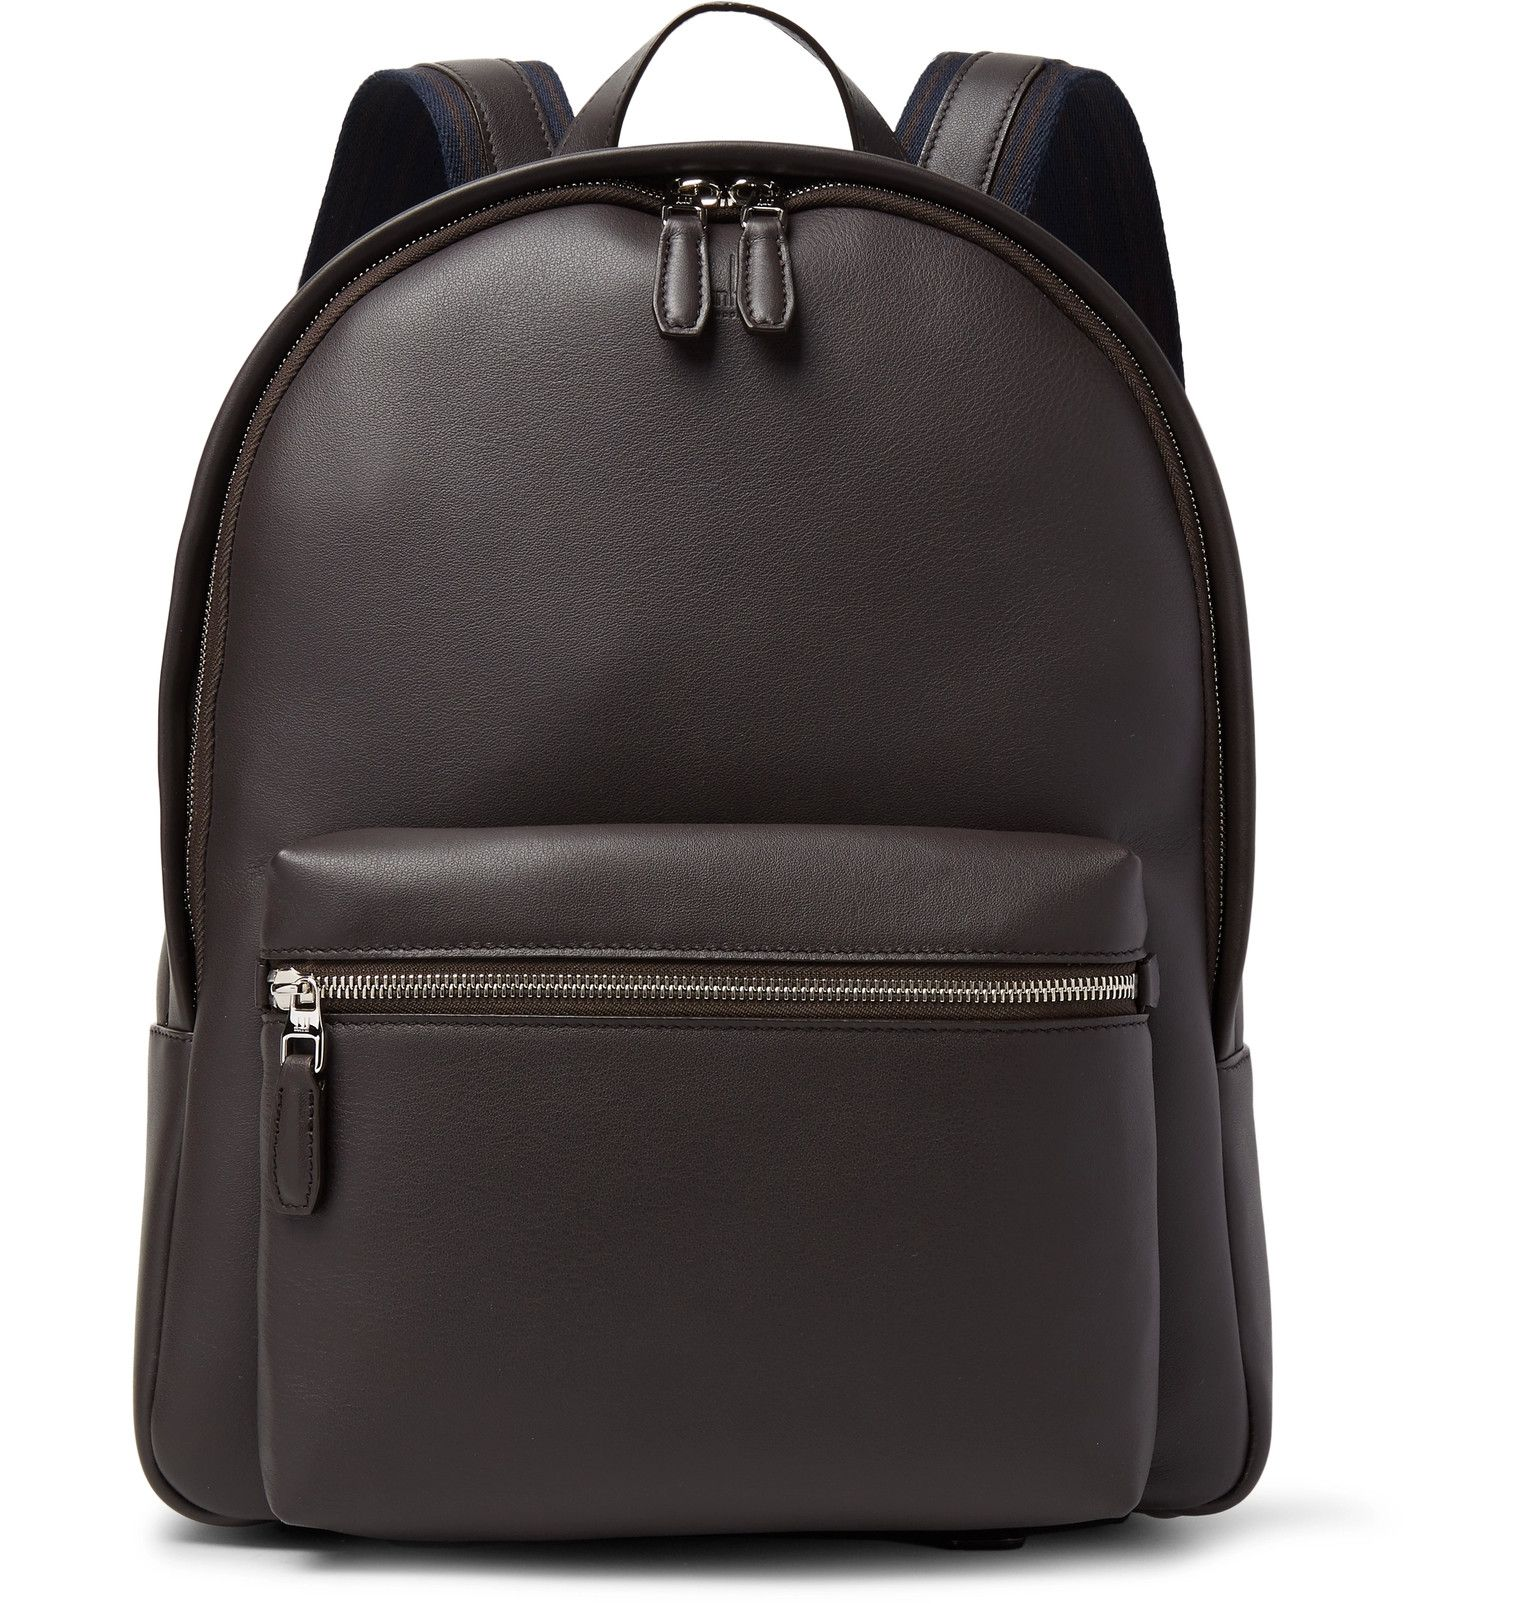 Dunhill - Hampstead Full-Grain Leather Backpack | backpacks ...